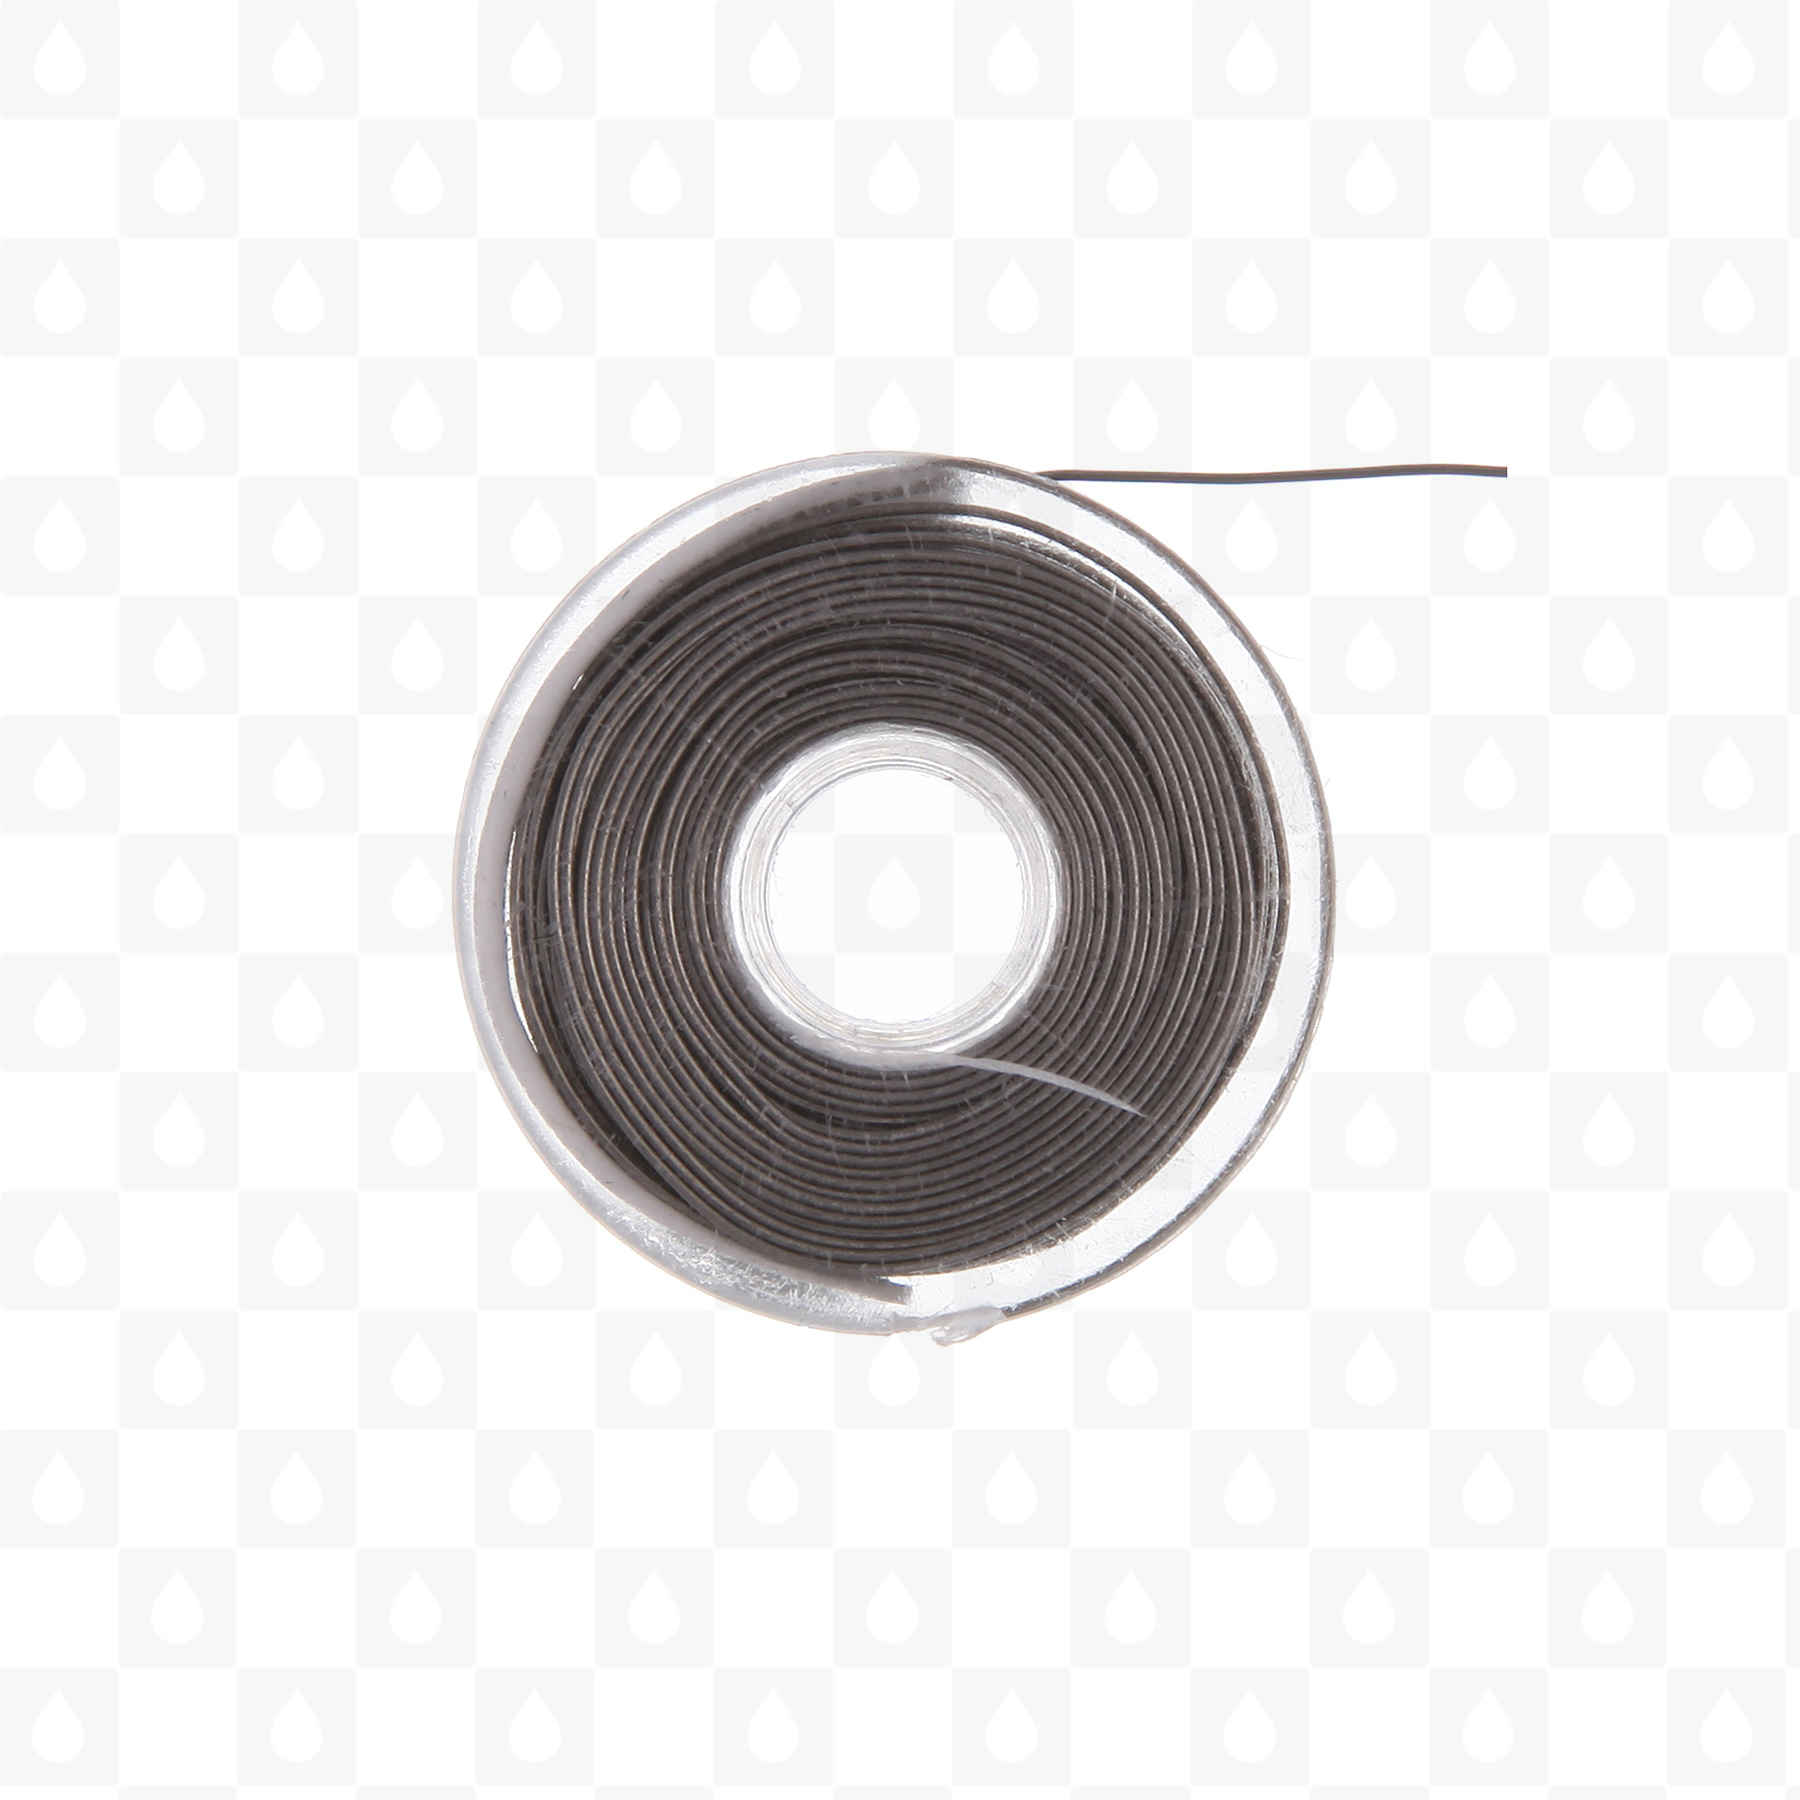 A1 Kanthal Heat Resistance Wire - 10 Meter Spools (Gauge Options ...